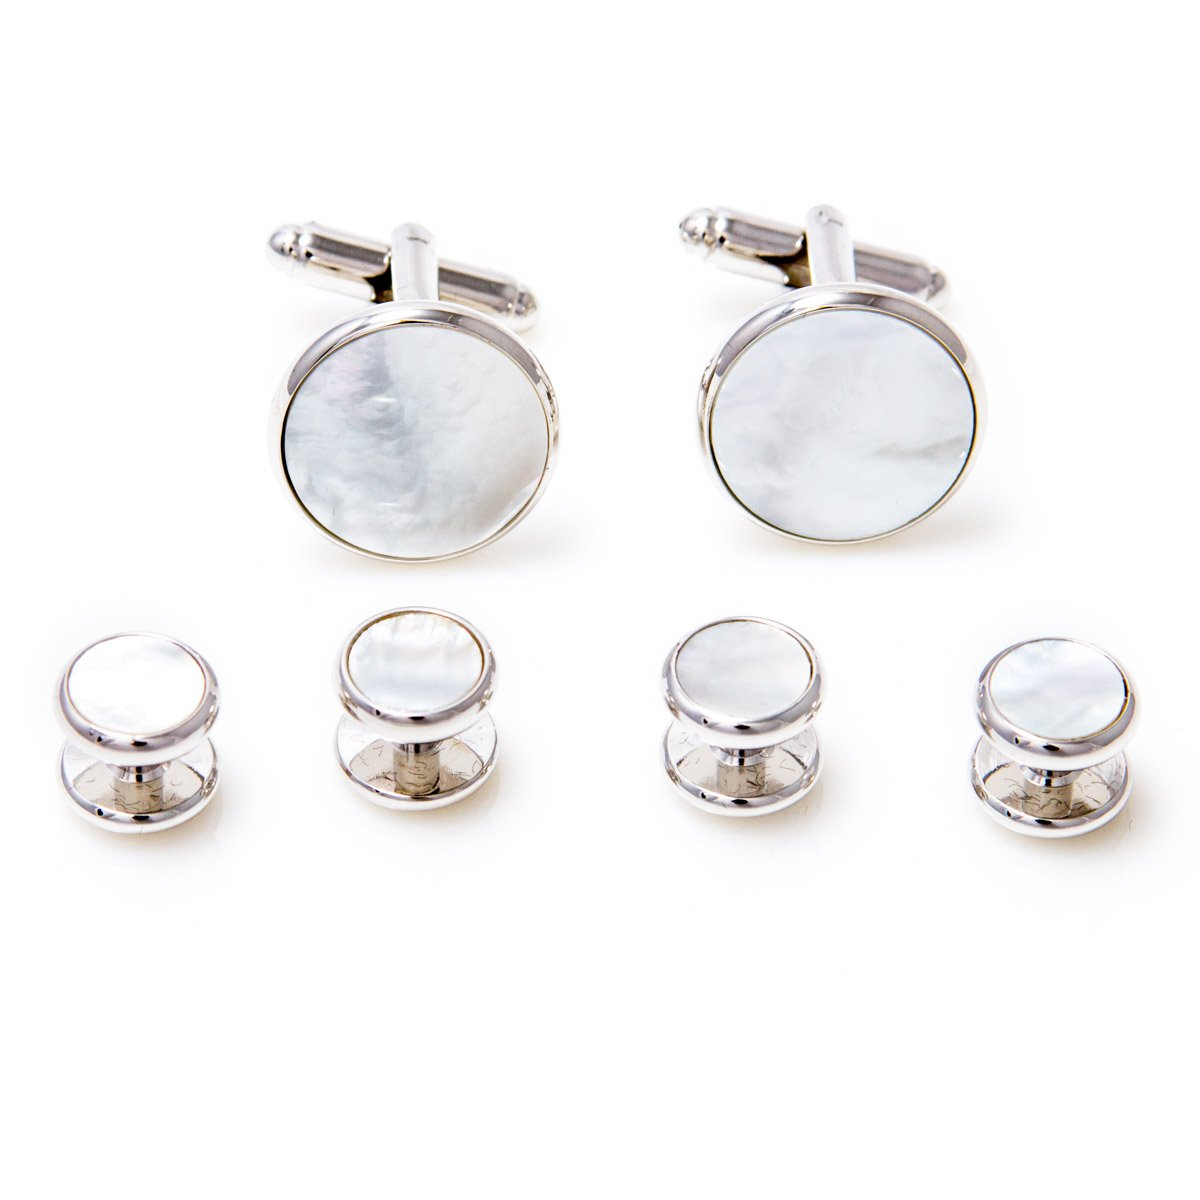 MRCUFF Mother of Pearl Cufflinks and Studs Tuxedo Set in a Presentation Gift Box & Polishing Cloth by MRCUFF